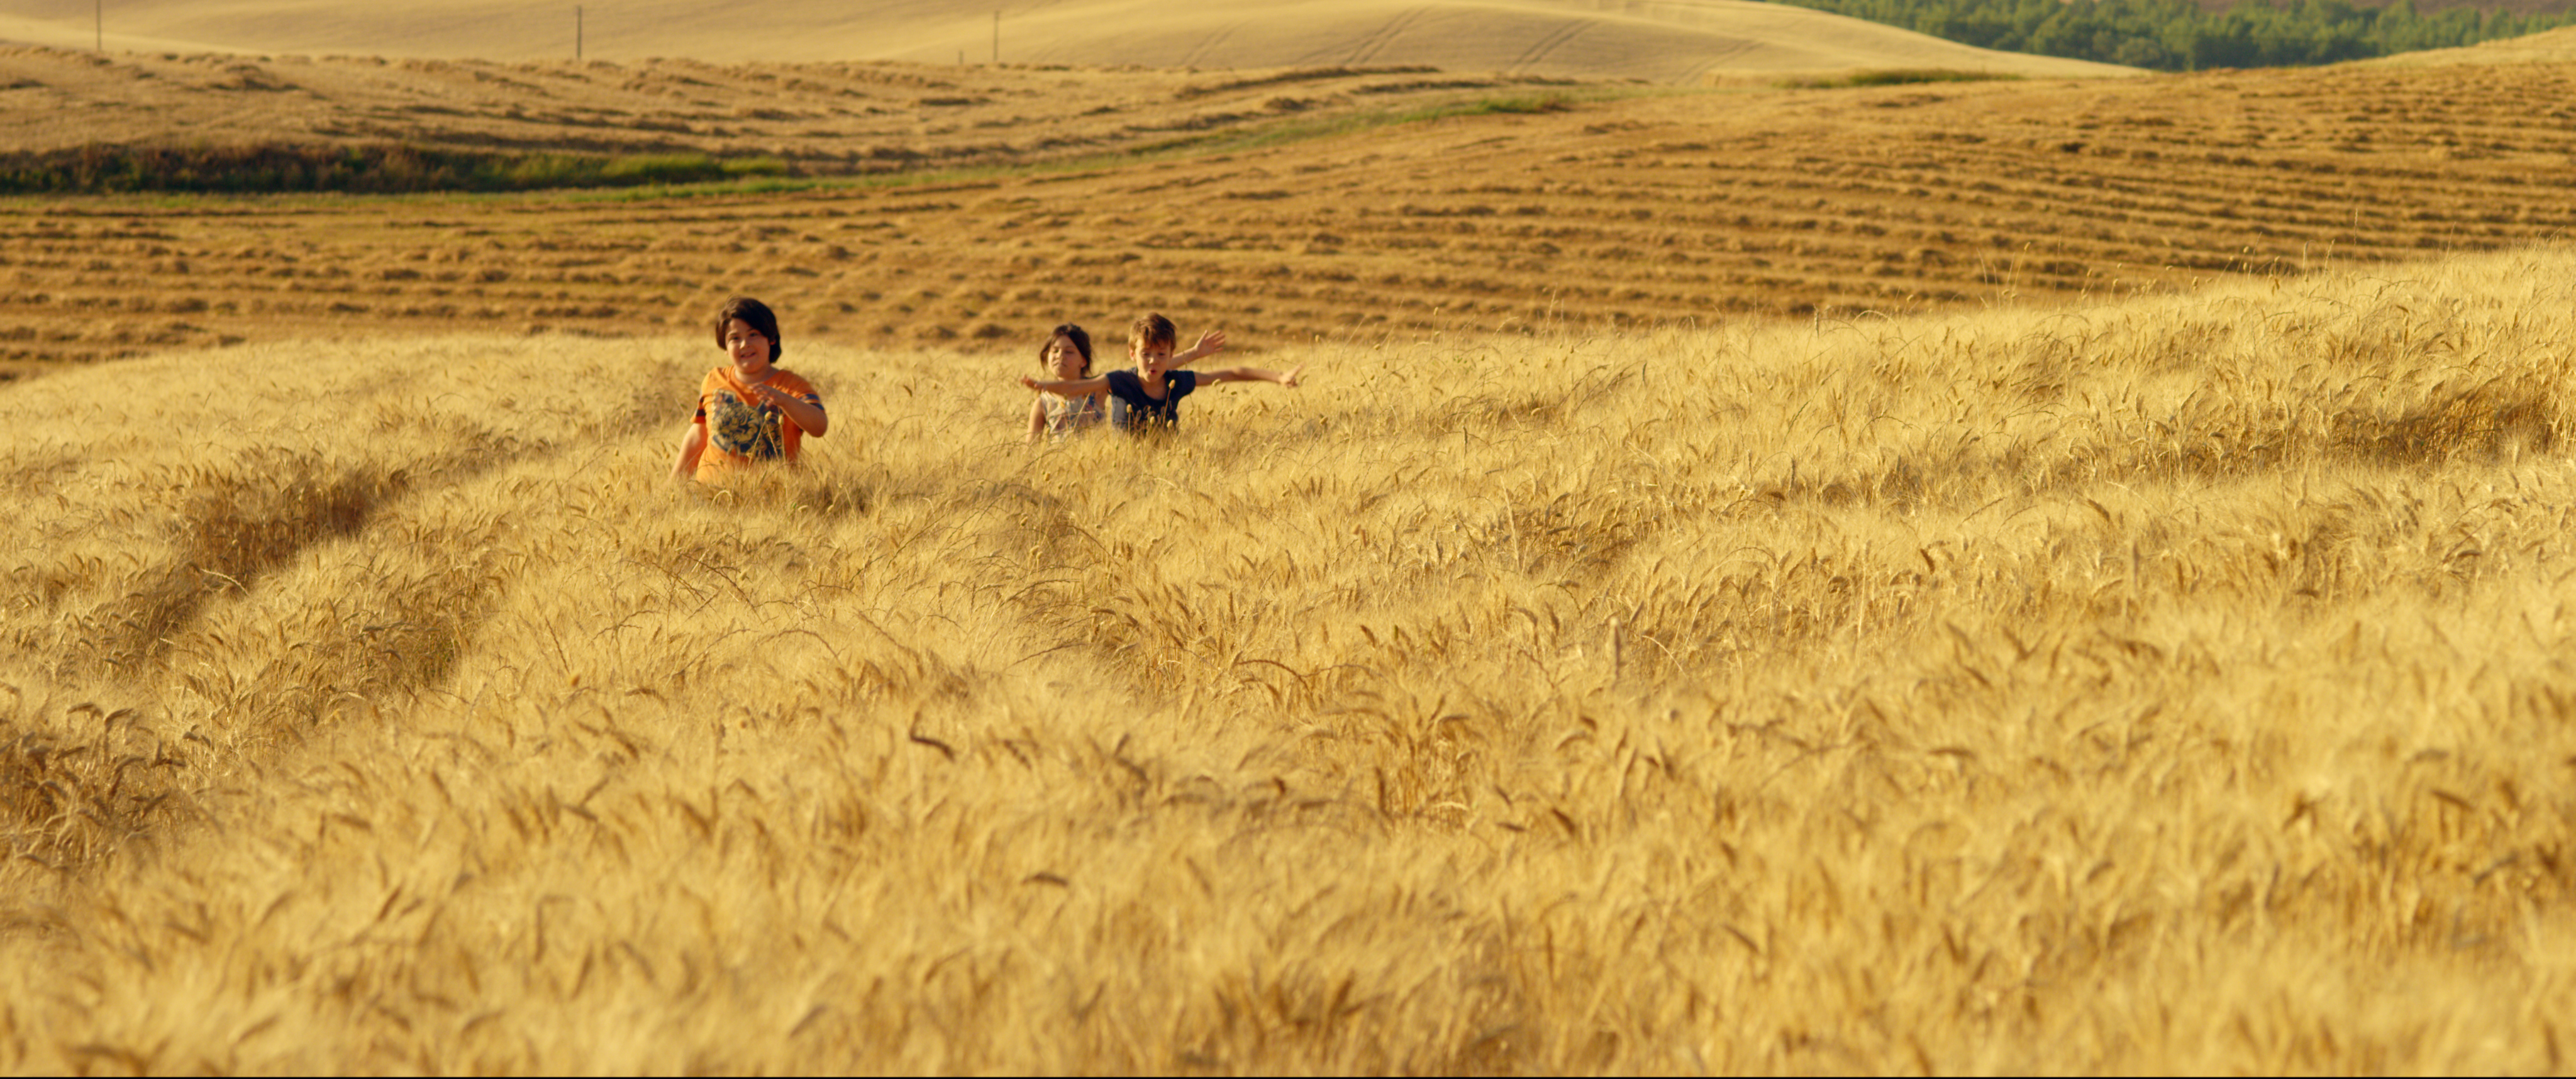 SEA OF WHEAT – LOST IN A TUSCAN TALE